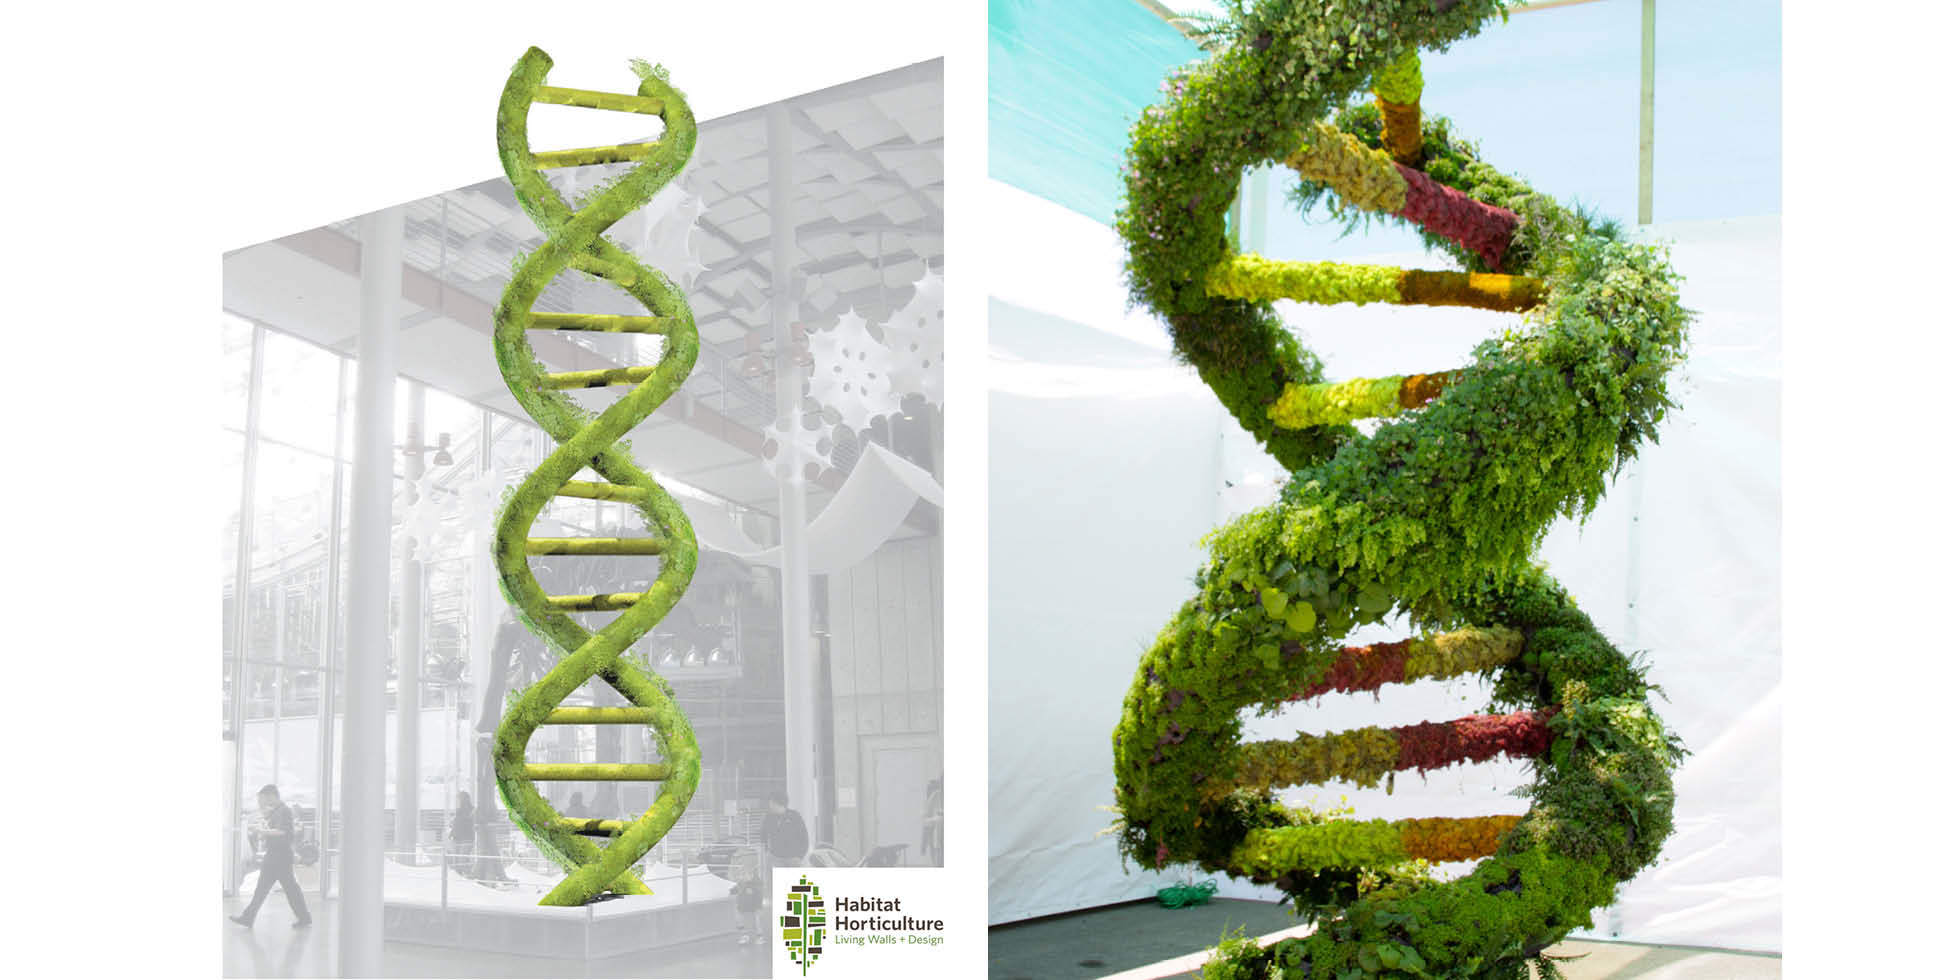 Living Double Helix Living Wall by Habitat Horticulture - View 3